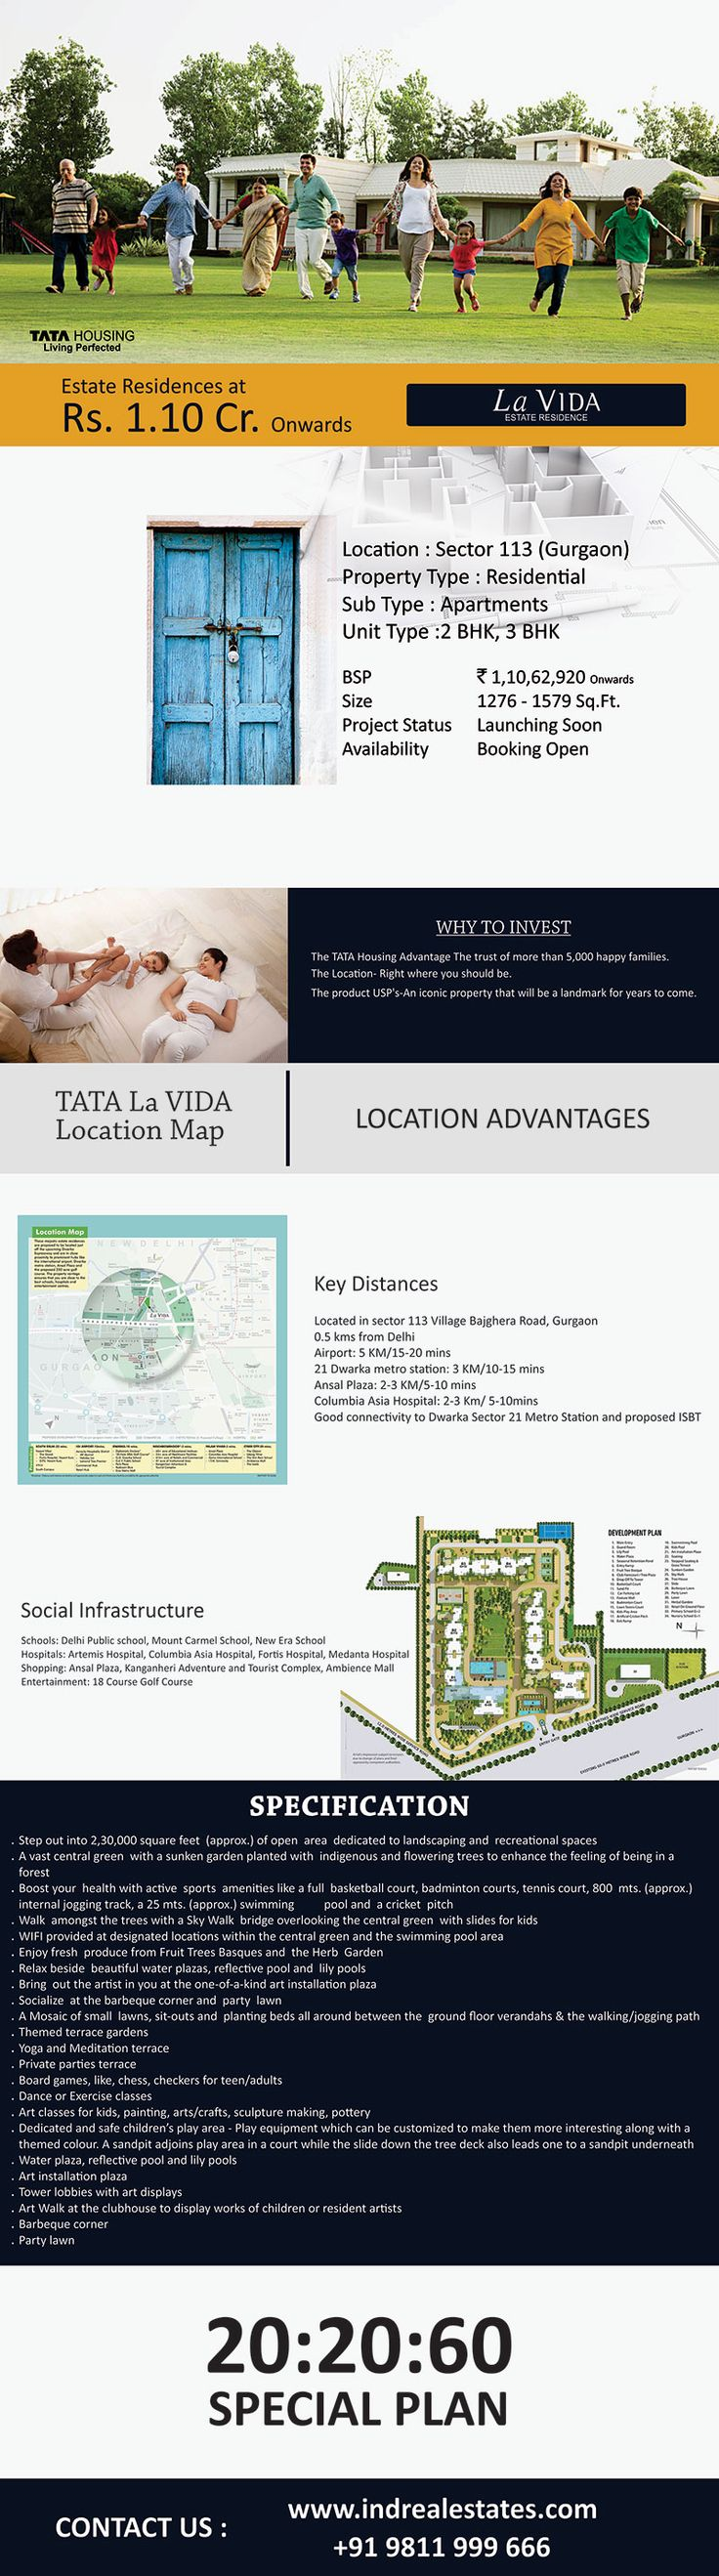 Tata La Vida, a most lovely project by the top builder of real estate market in India Tata Housing which is a perfect mishmash of 2BHK and 3BHK apartments with a number of amenities. The project is strategically situated in Gurgaon Sector 113.